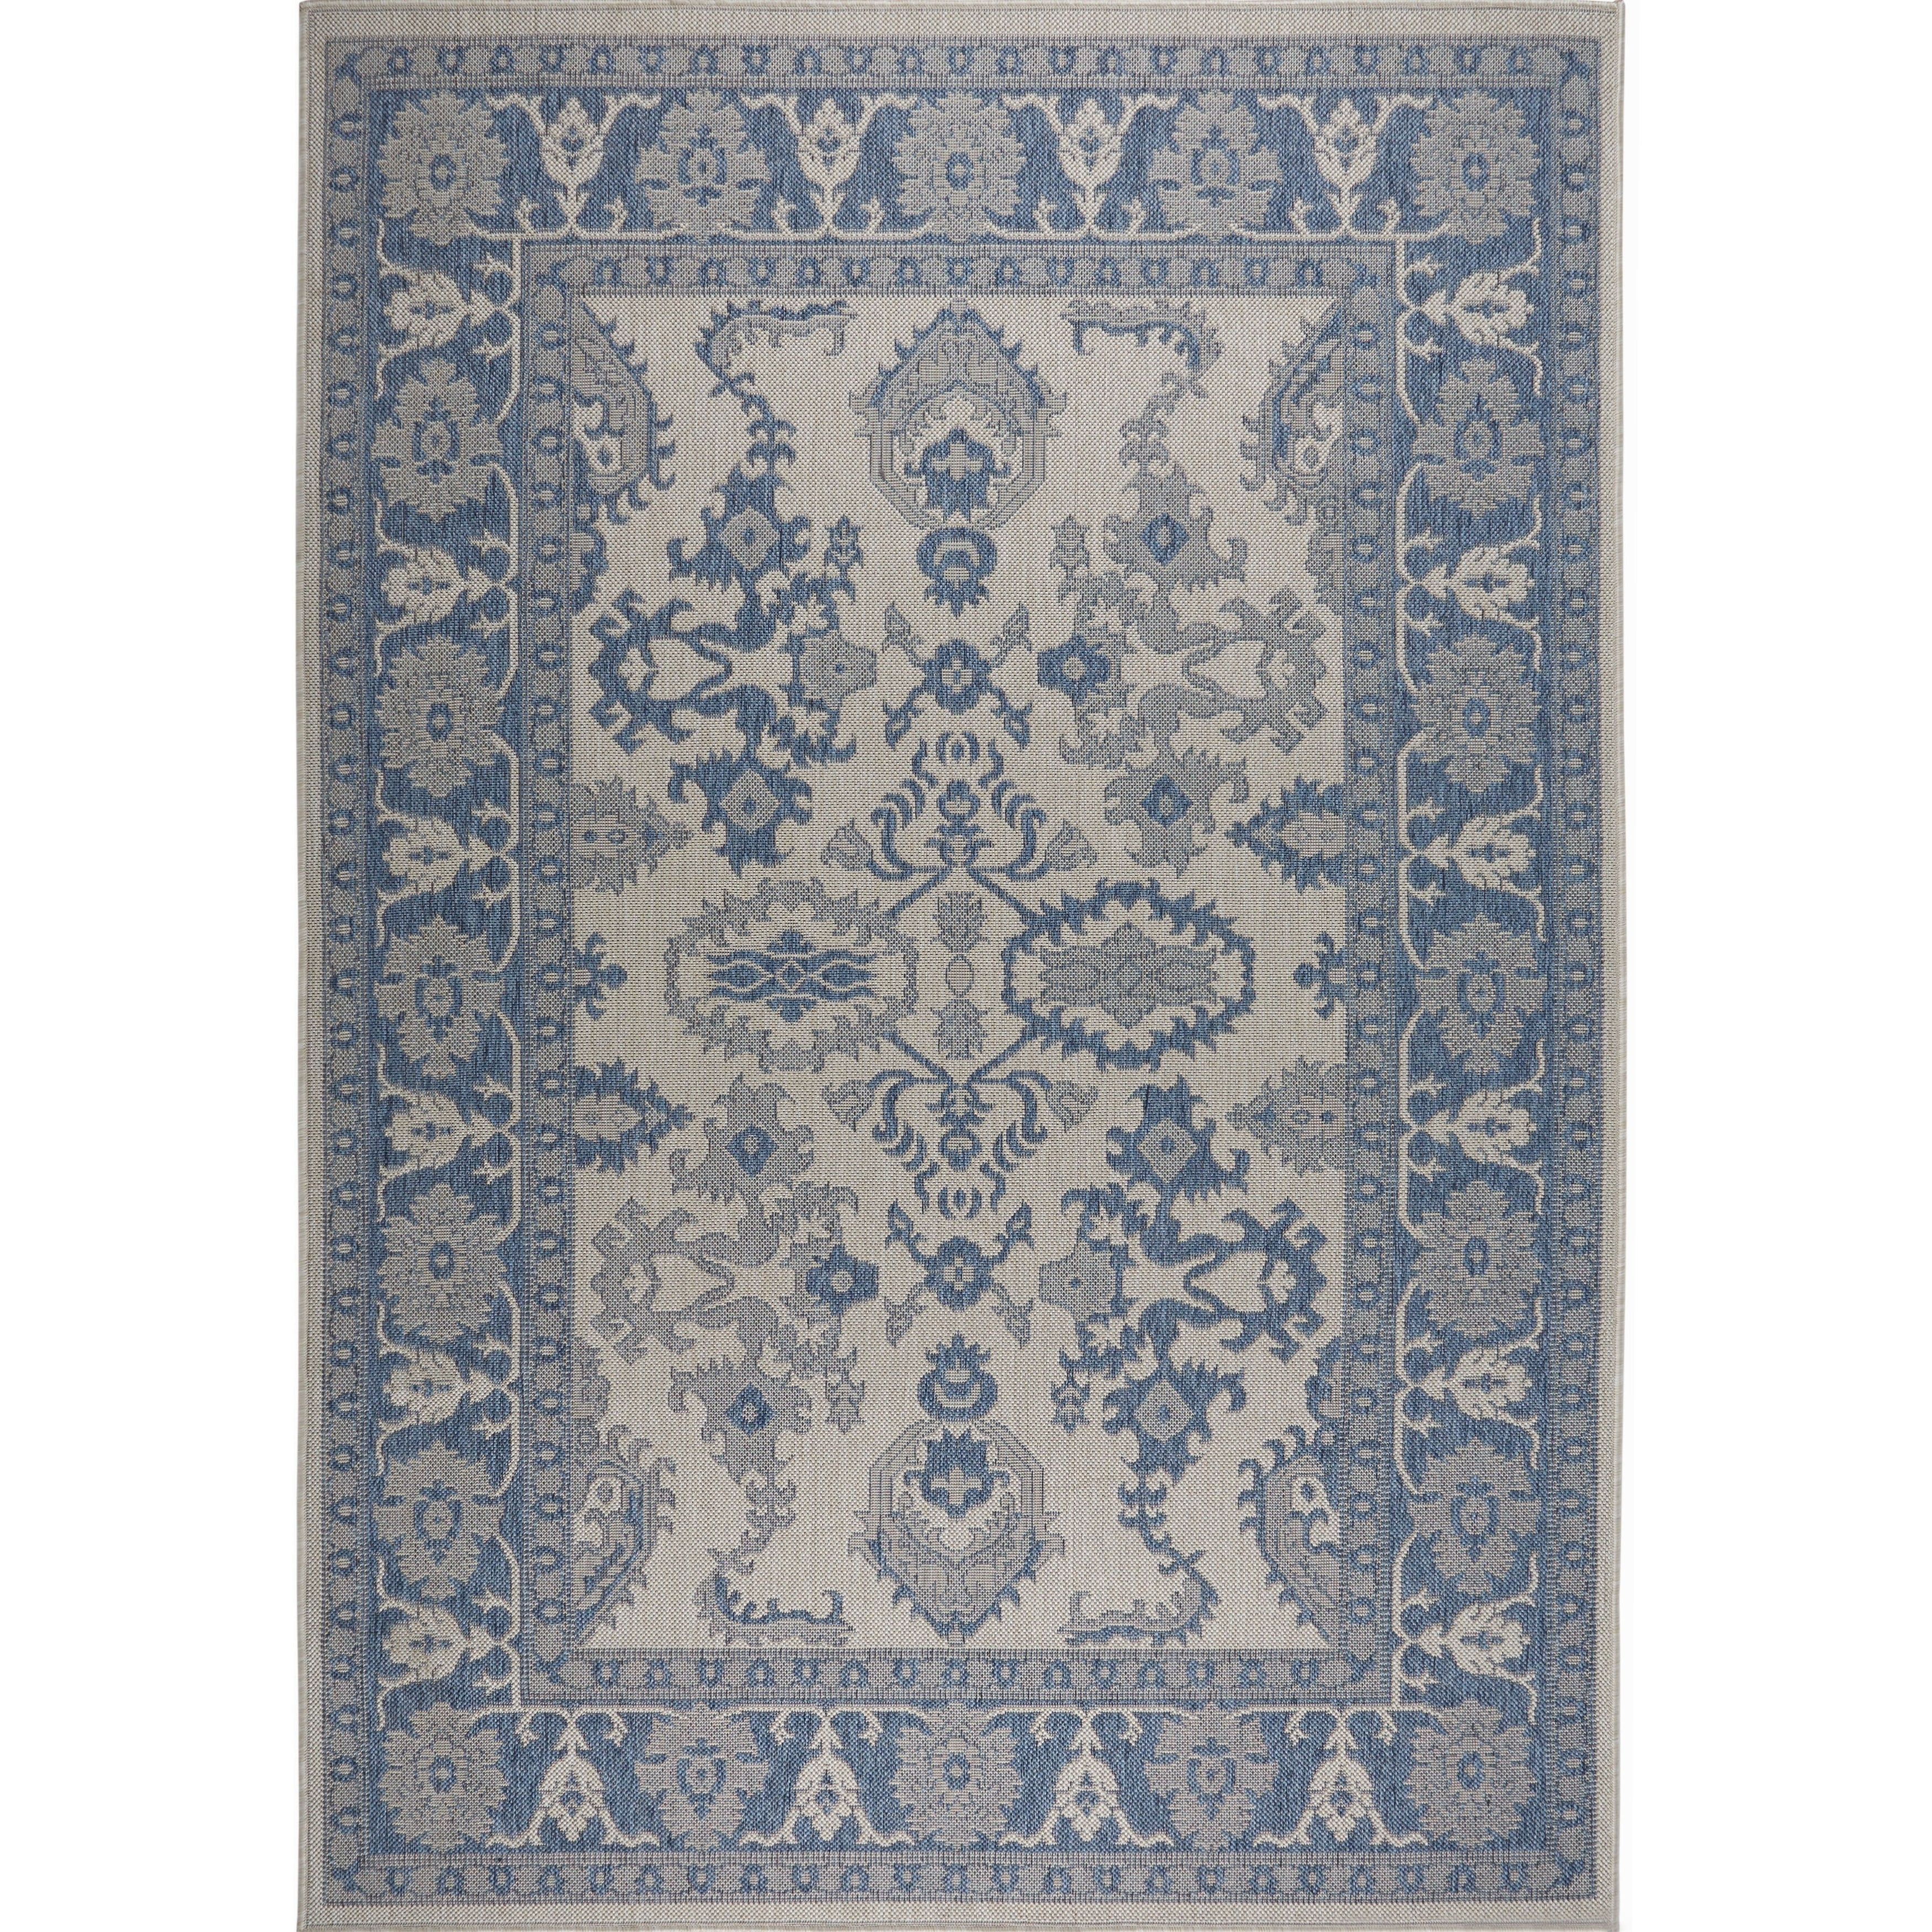 Details About Patio Country Gray Blue Bordered Indoor Outdoor Rug By Nicole Miller 5 2 X7